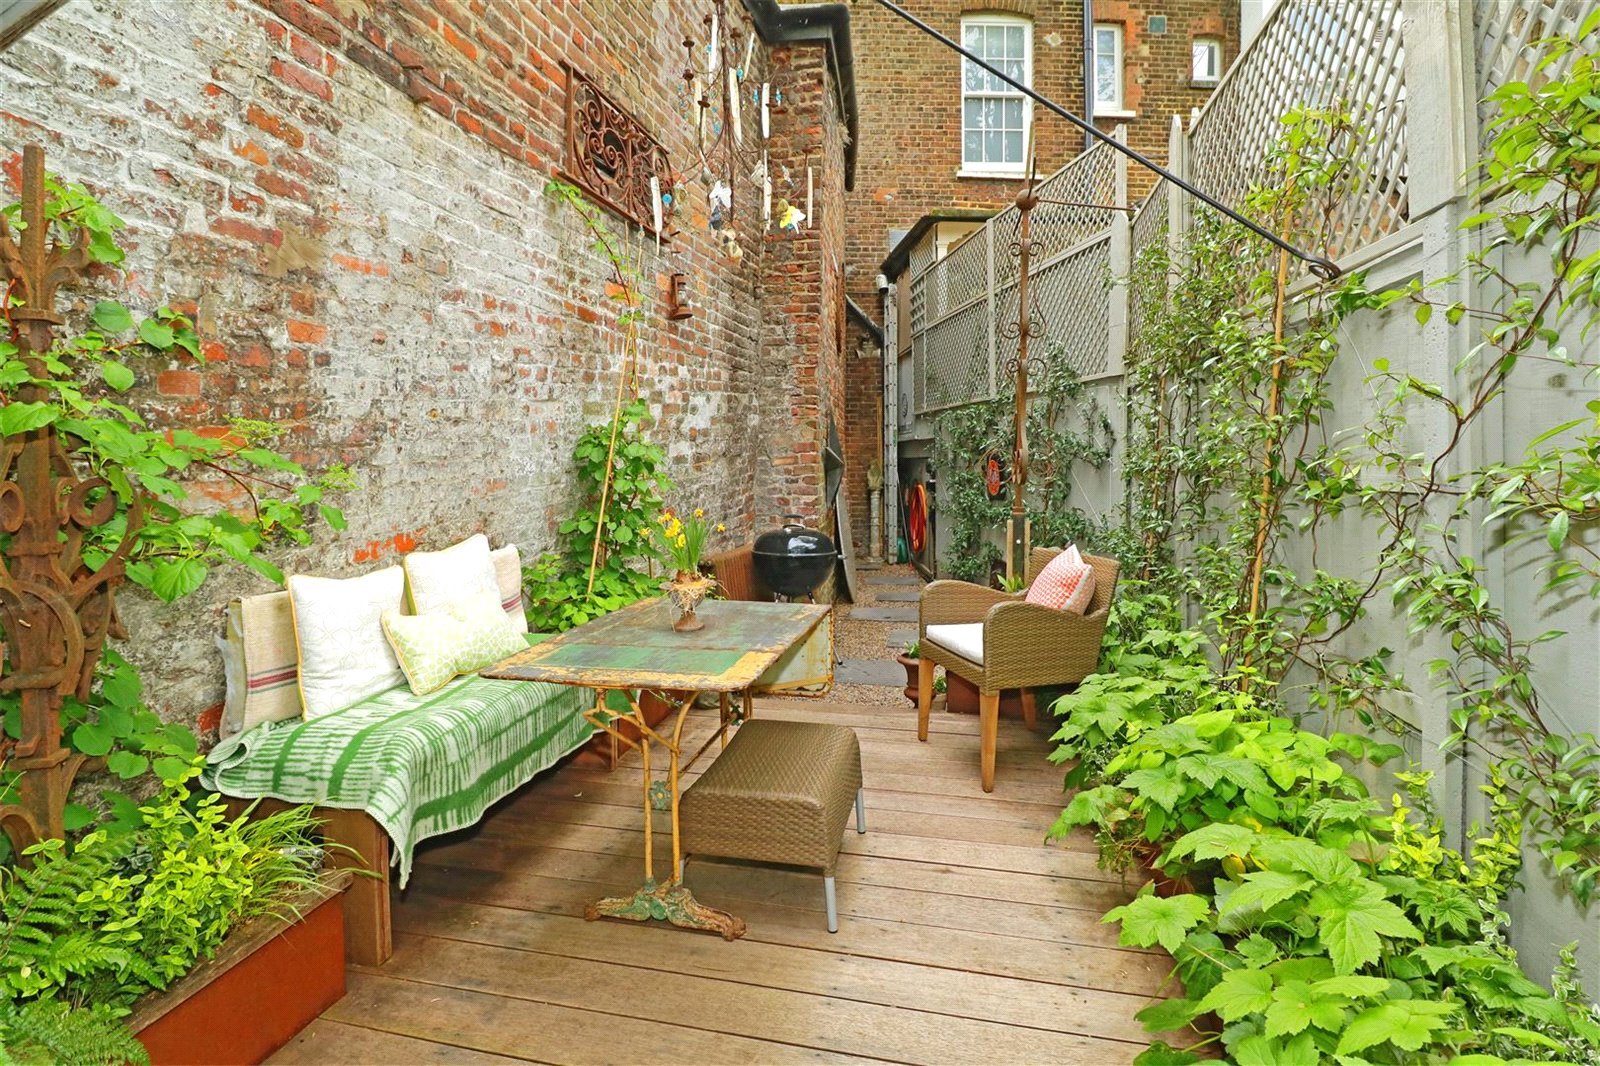 House for sale in Highgate, N6 5HX 3